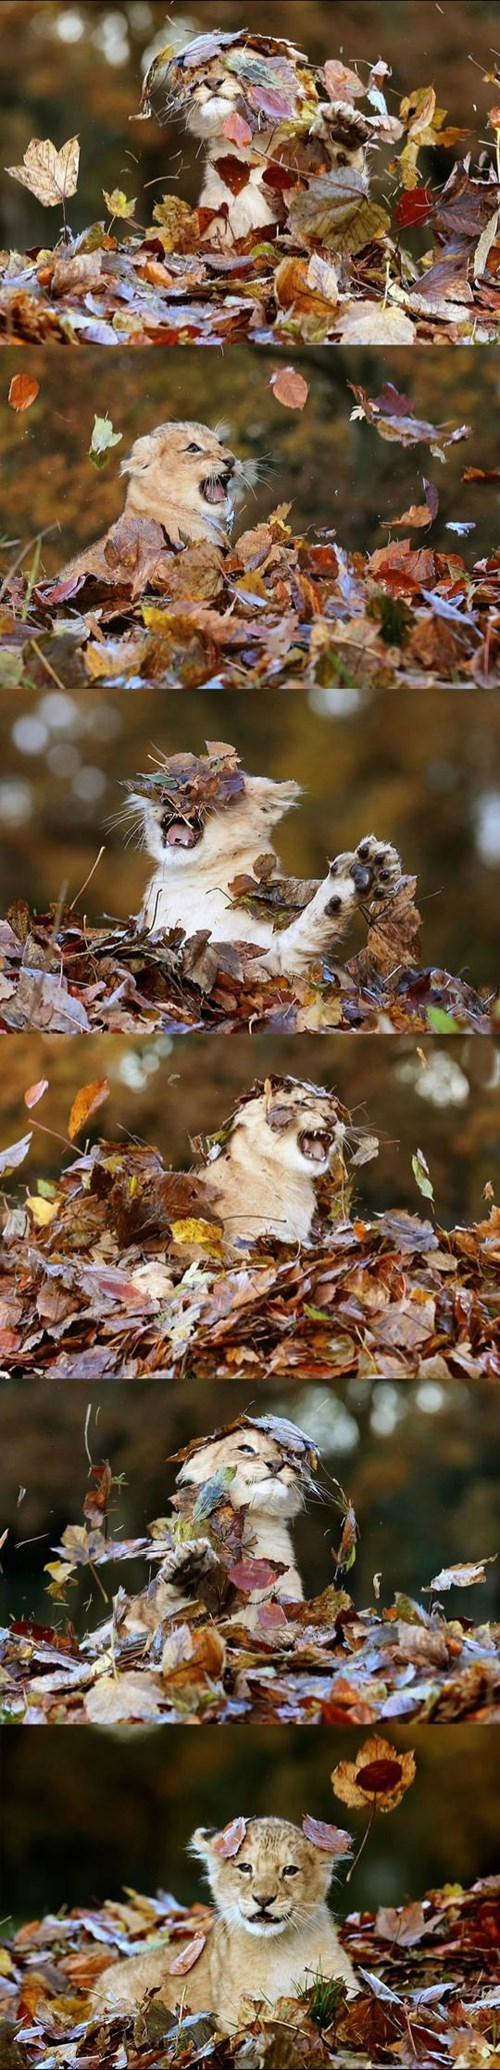 Just a Kitty Playing in the Leaves